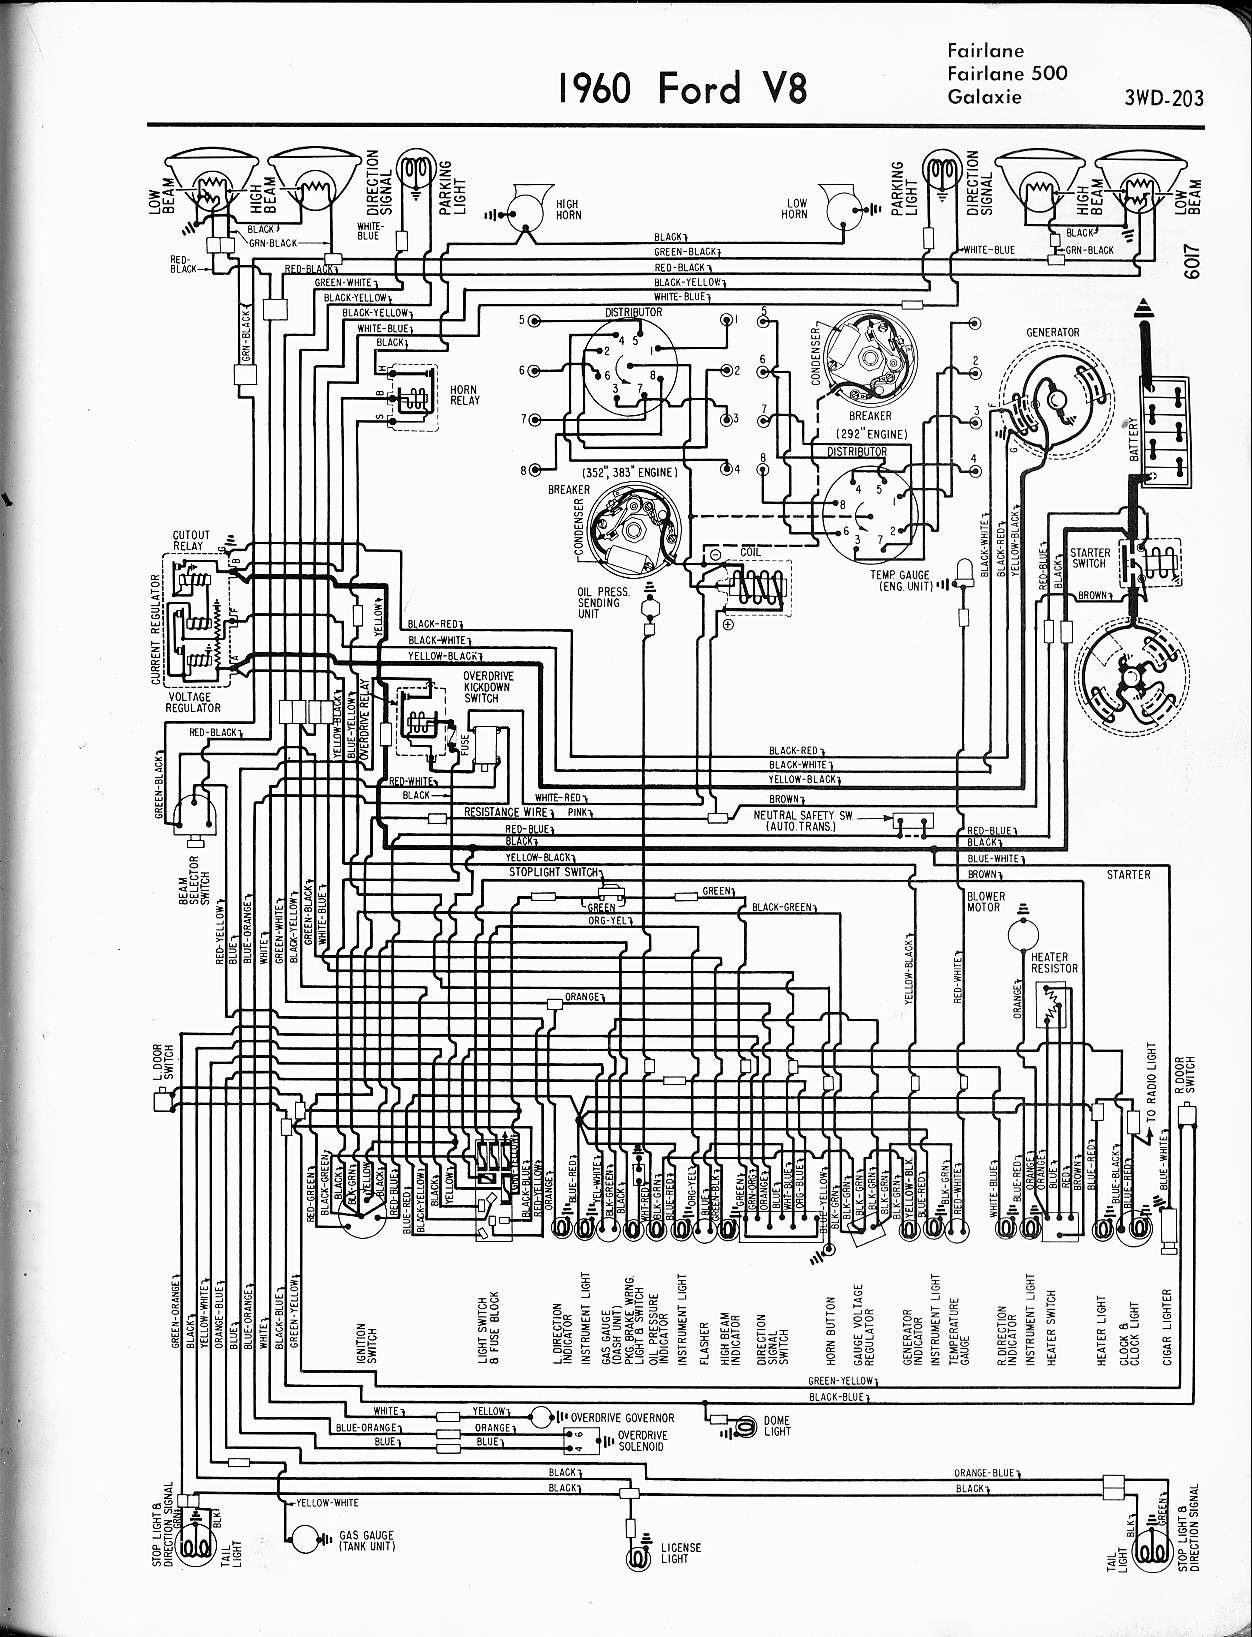 1965 Ford Fairlane 500 Wiring Diagram FULL HD Version Wiring Diagram -  TUCK.AS4A.FRAS4A.FR